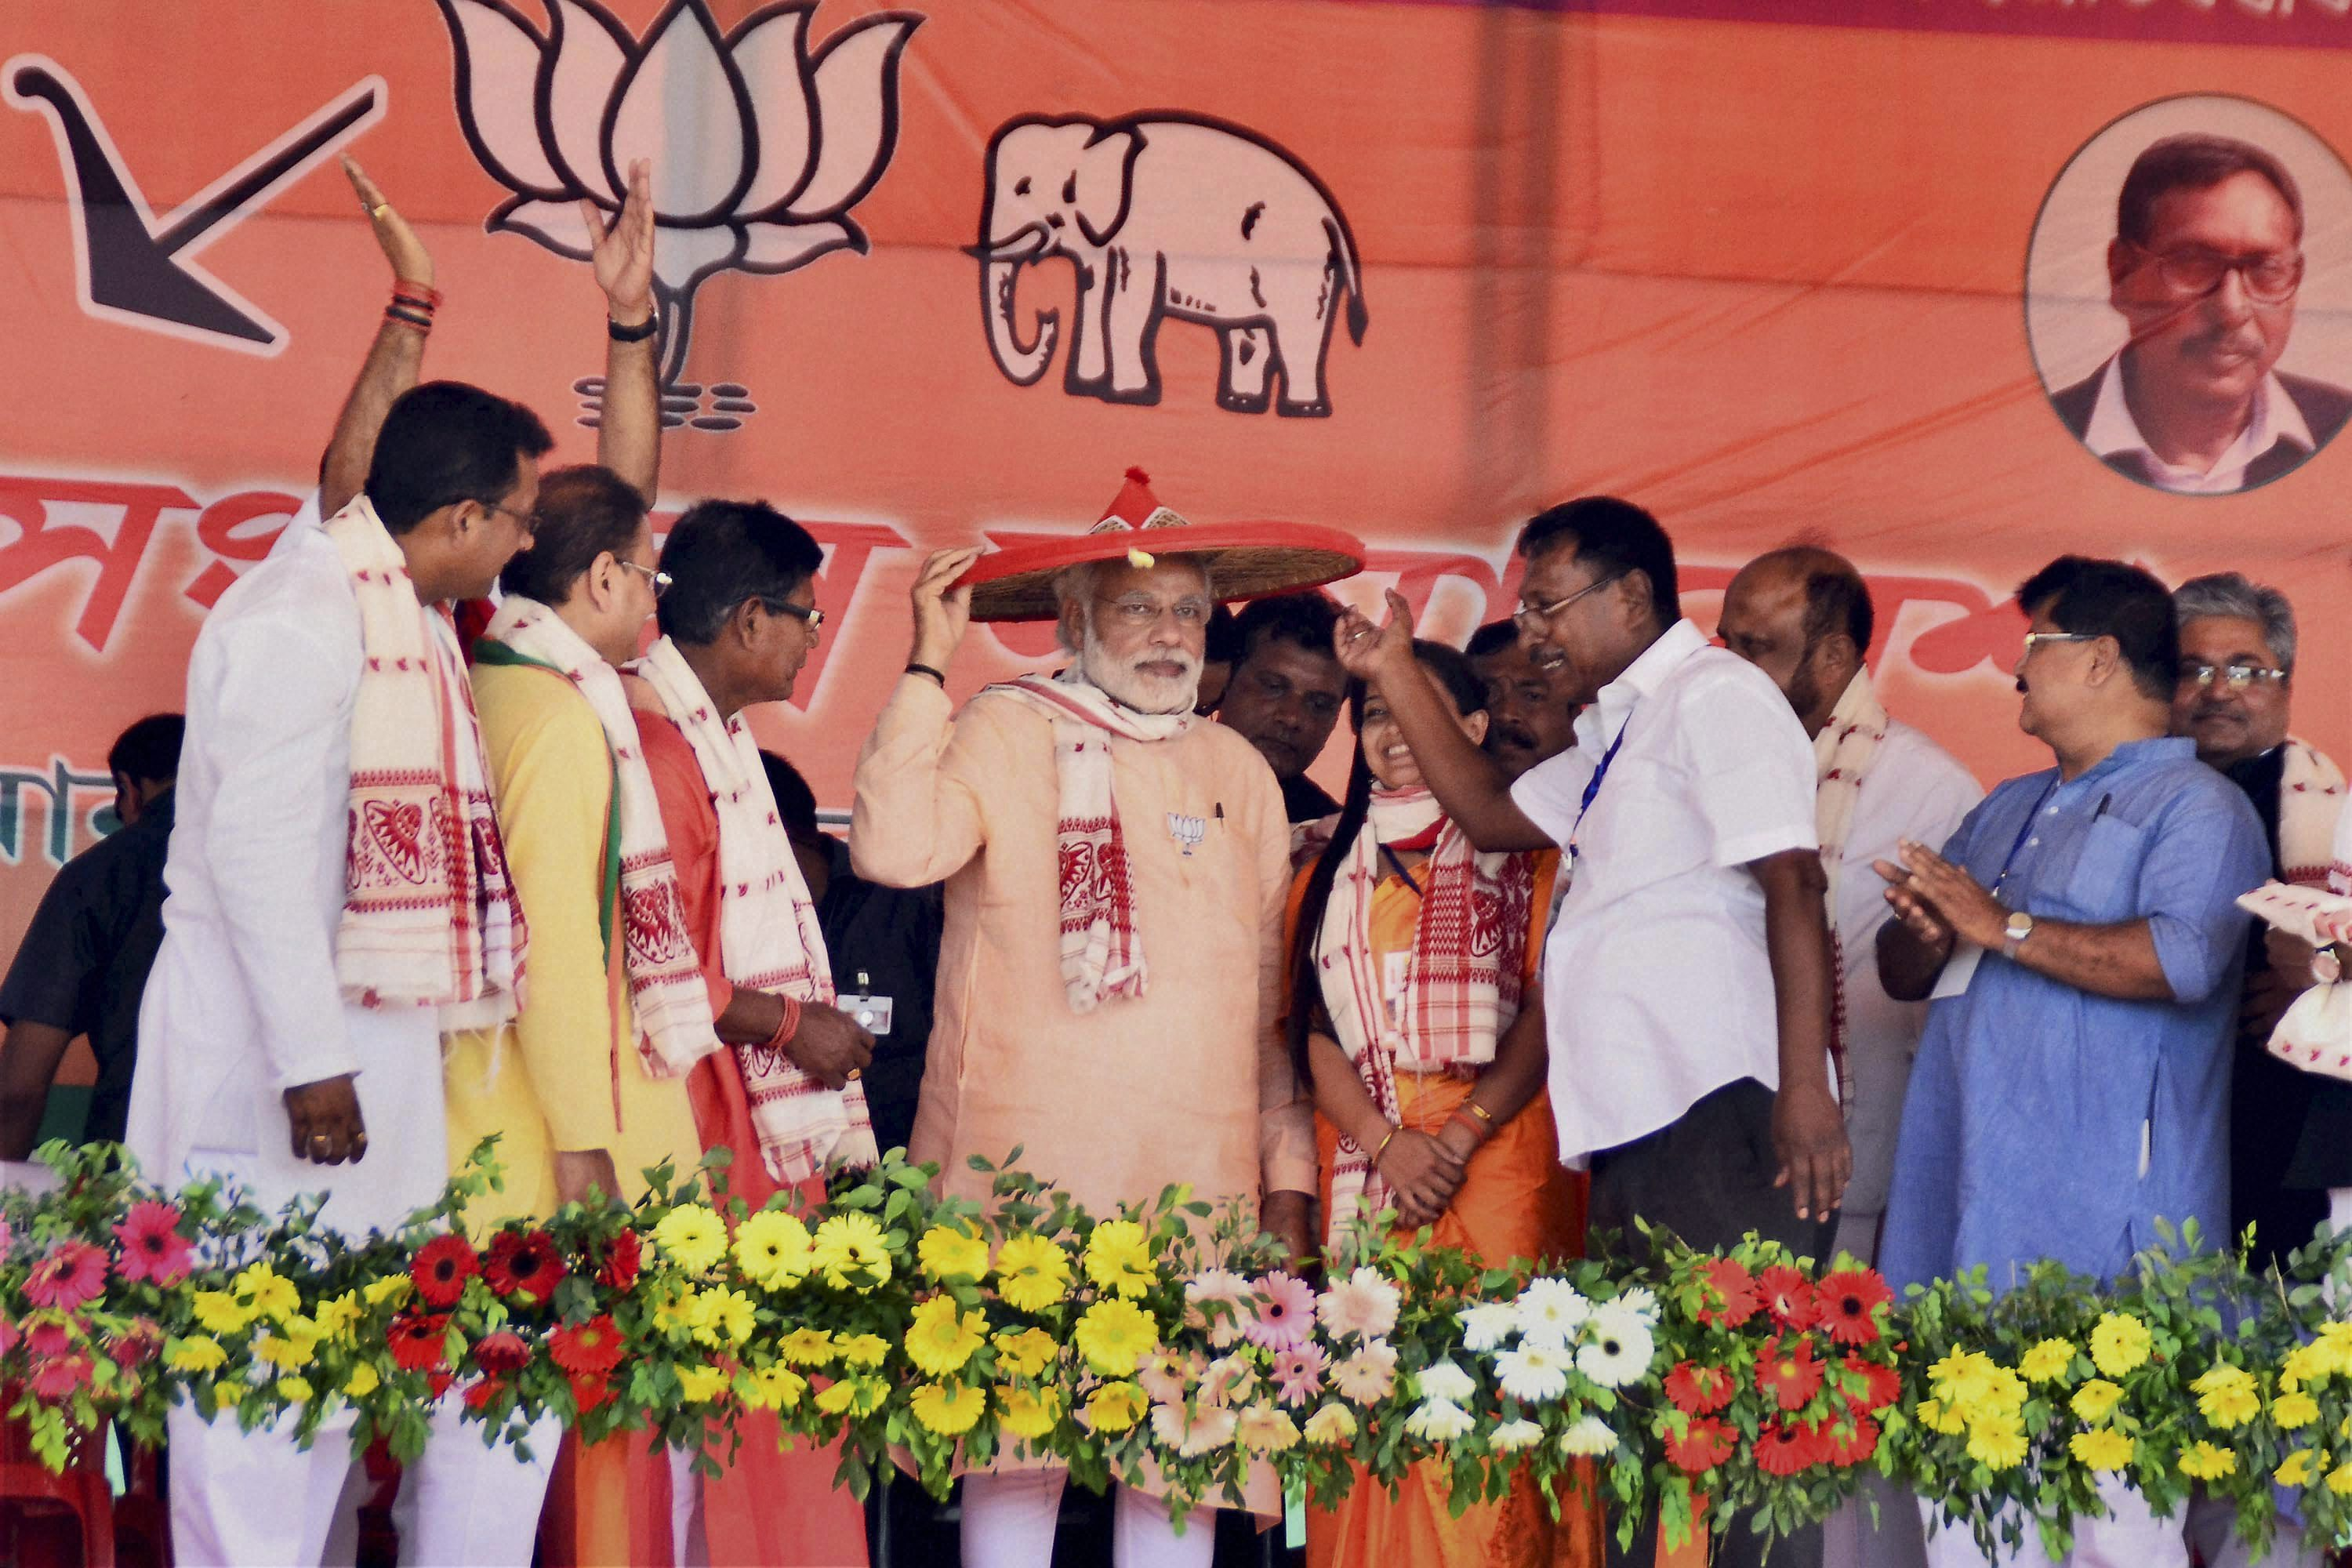 The thrust of SR Sen's history is very much along the lines of Narendra Modi's campaign speeches in the North East, where he has asserted that India is a 'natural home' for Hindus. Photo credit: PTI